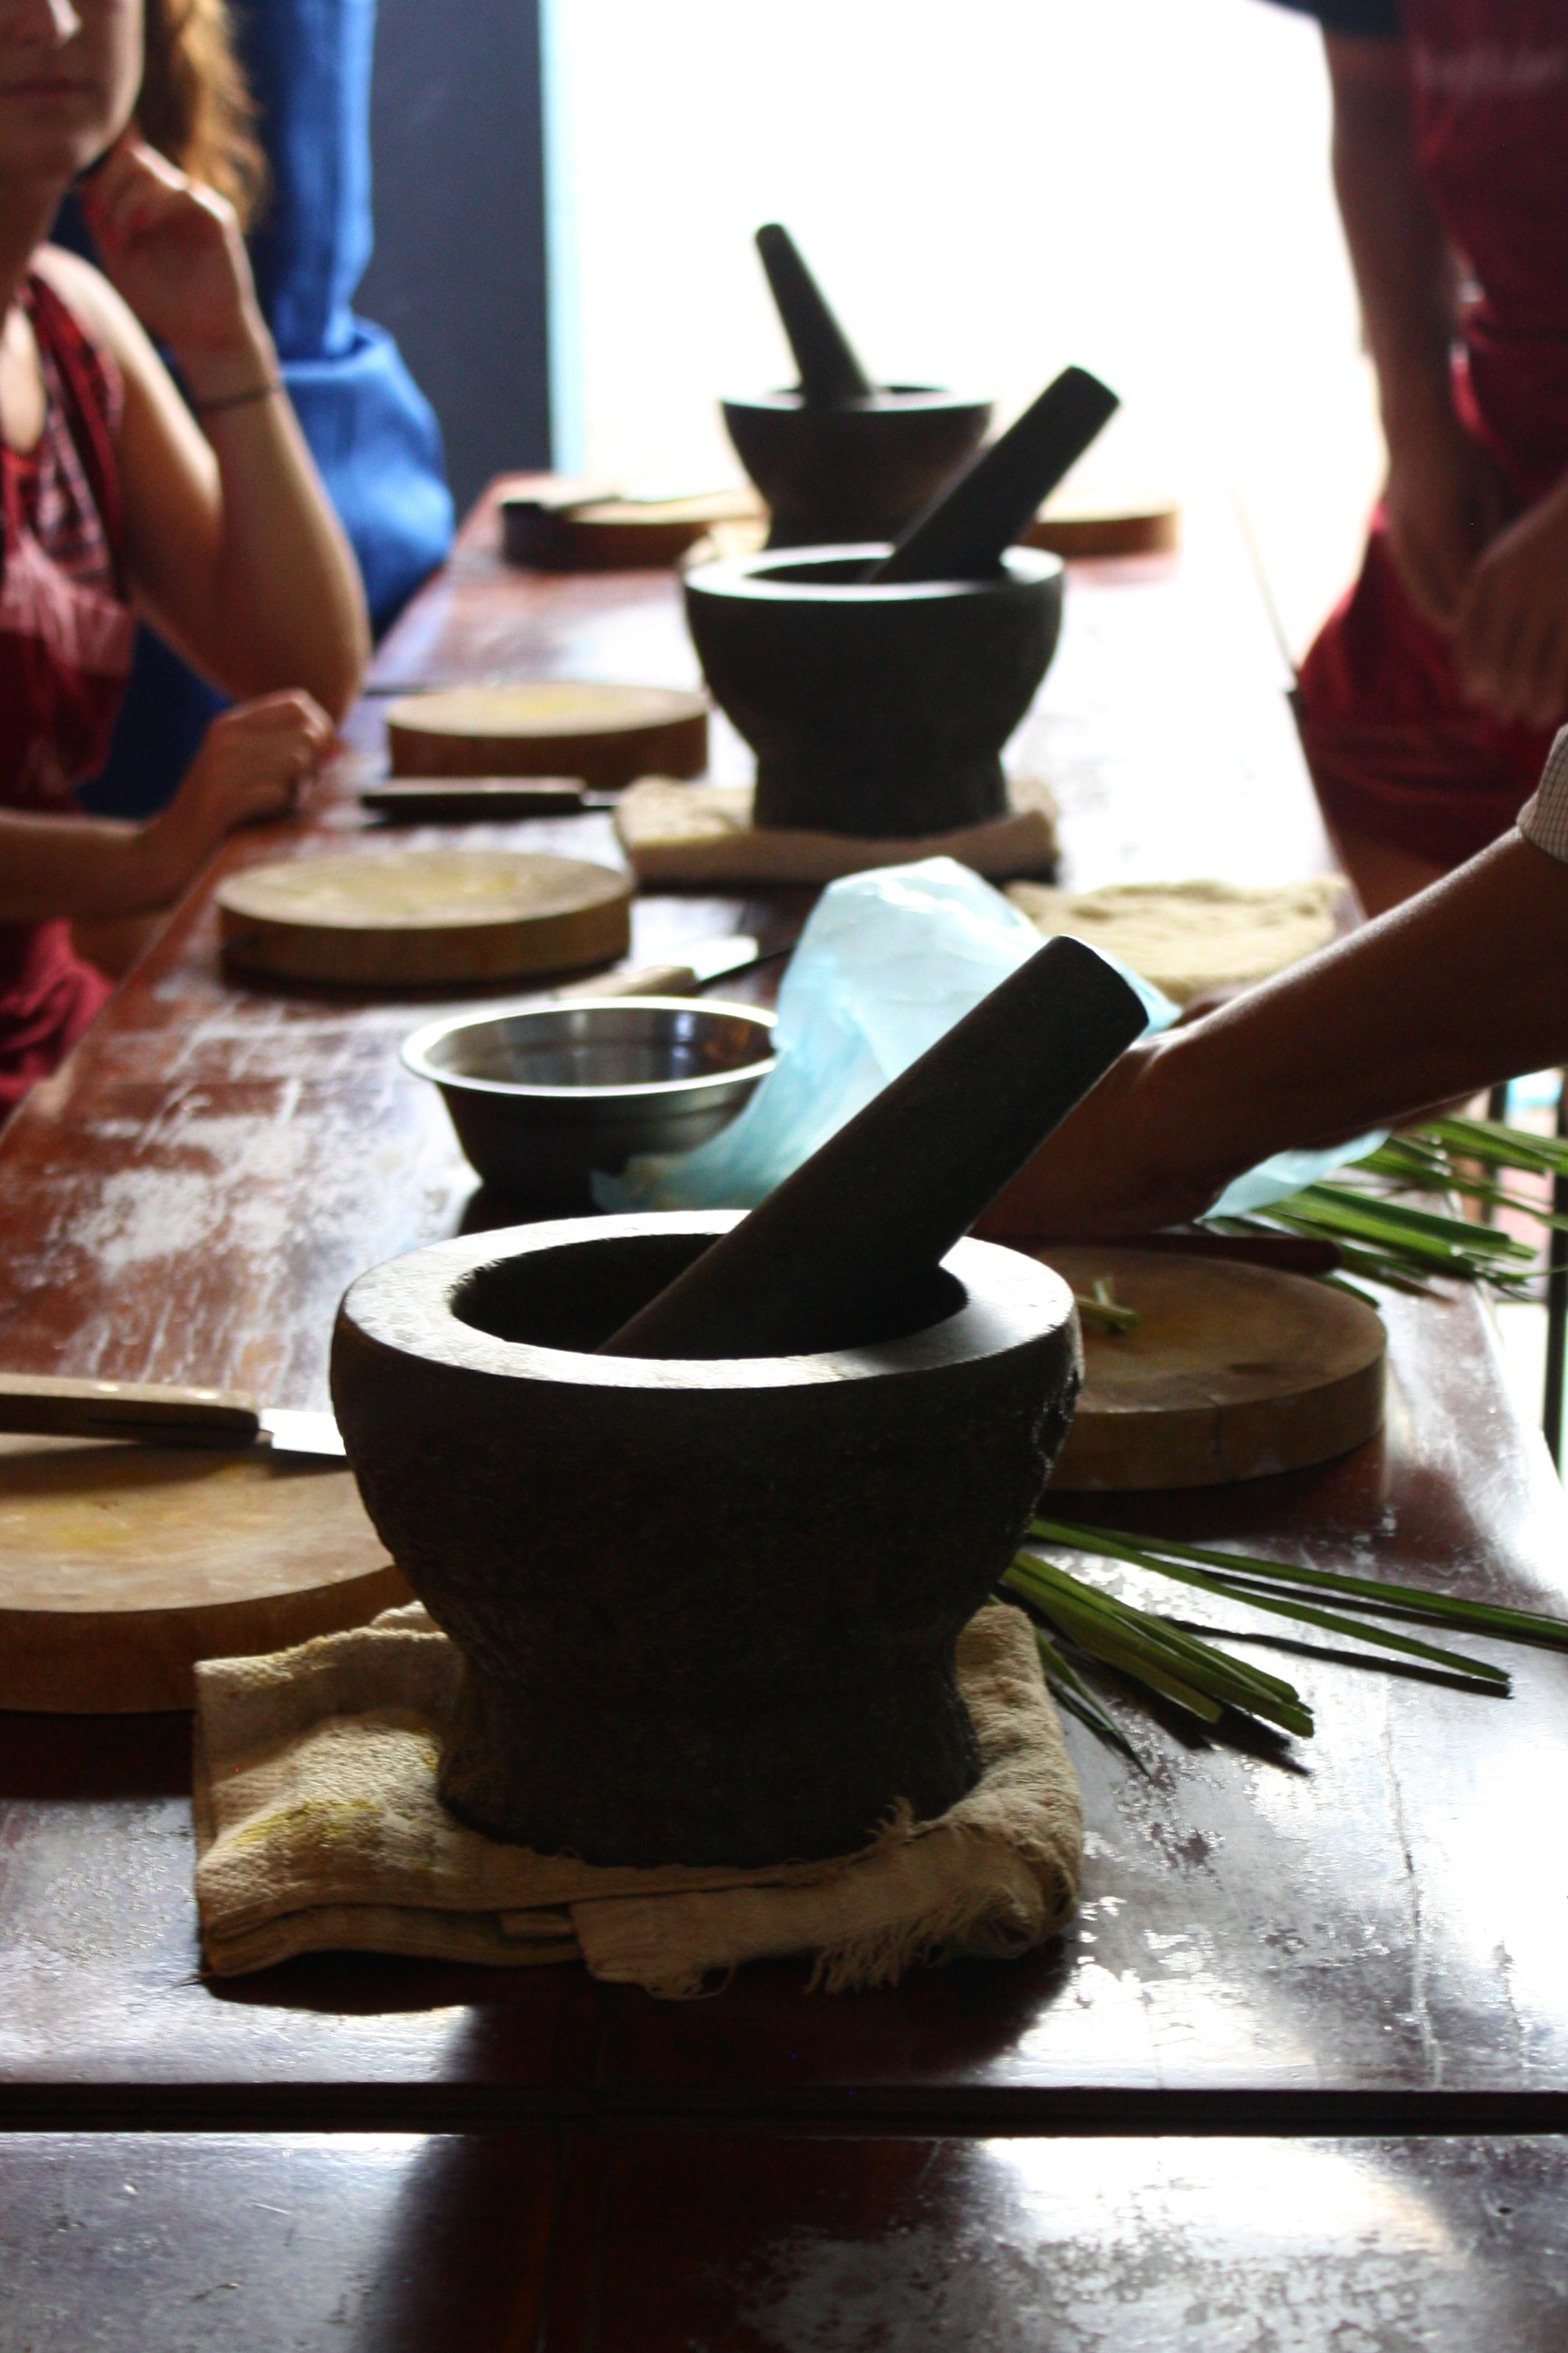 Mortar and pestles make the best curry pastes!